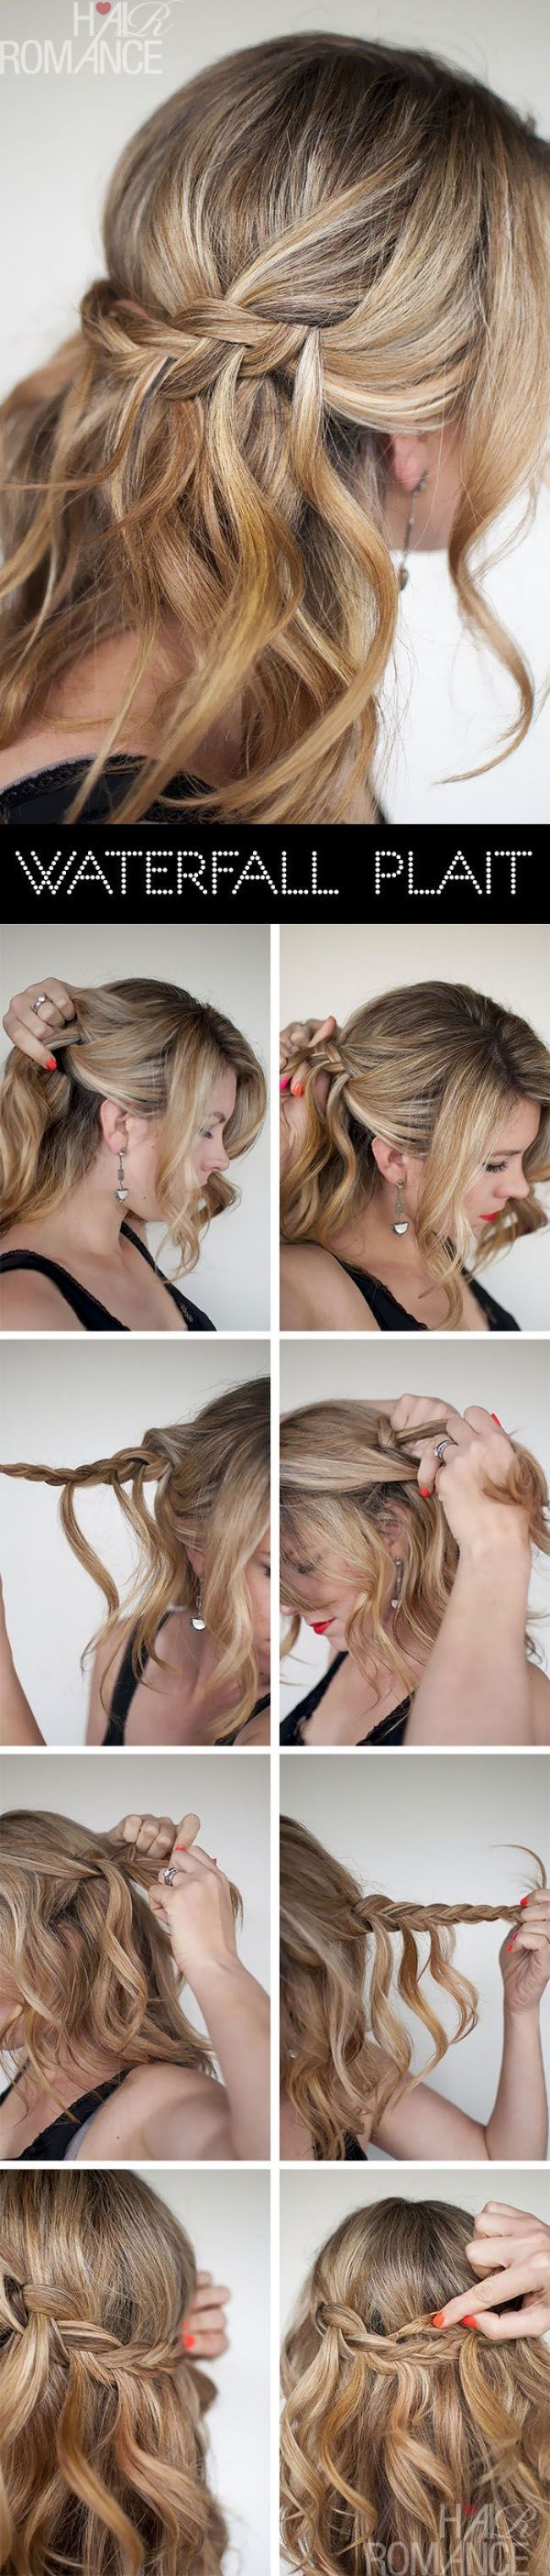 138 best Hairstyles to try images on Pinterest